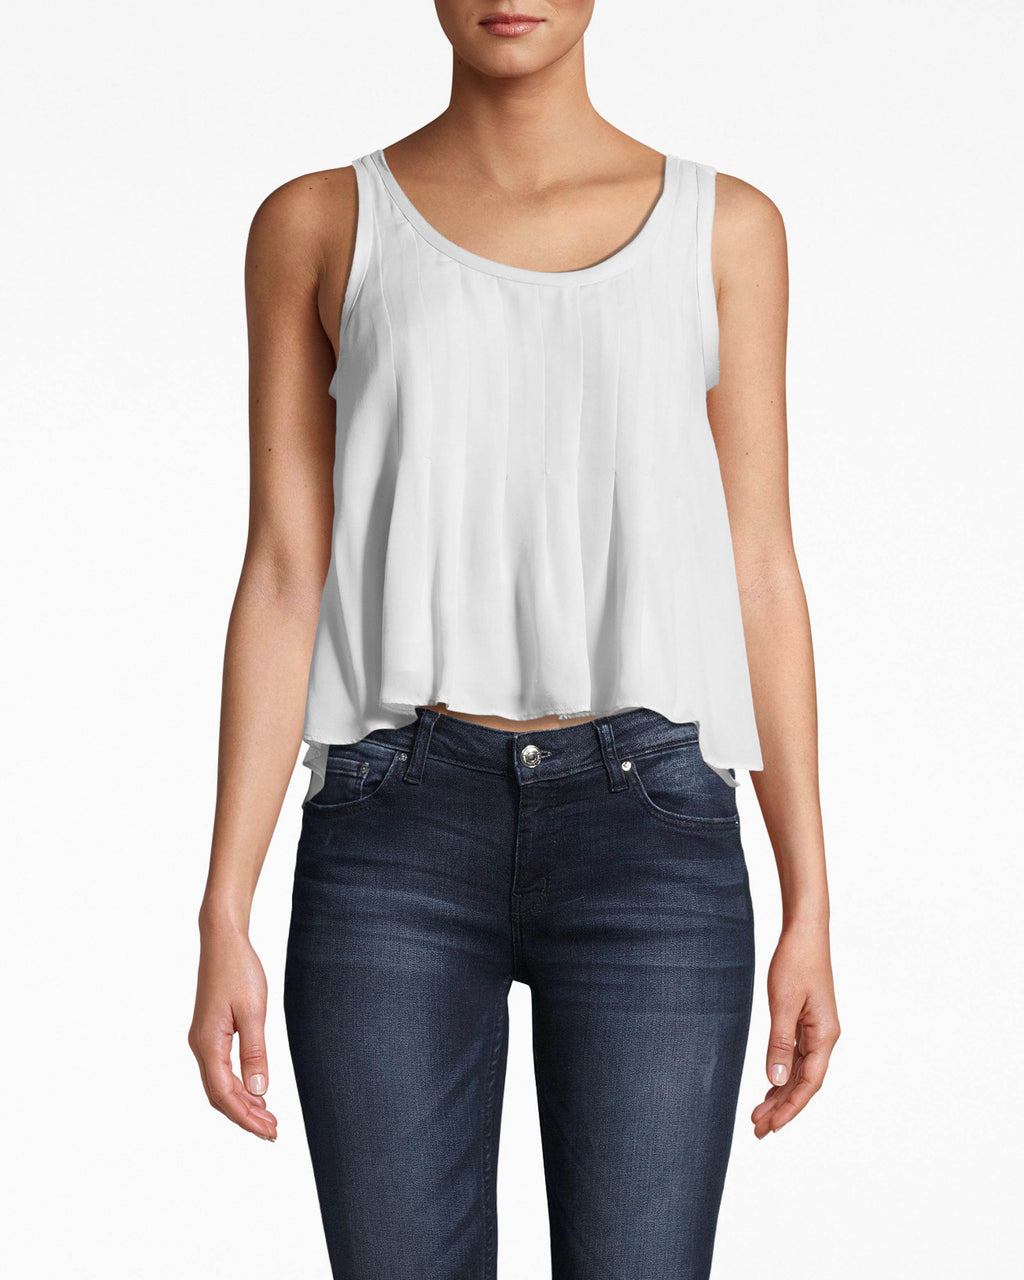 BC10306 - Skylar Solid Silk with Picot Tank - tops - shirts - THIS FLOWY TANK IS CRAFTED FROM SOLID SILK AND HAS A SCOOP NECKLINE. THIS EASY TOP PAIRS WITH EVERYTHING IN YOUR CLOSET ALREADY. Add 1 line break STYLIST TIP: WEAR WITH HIGH WAISTED JEANS AND YOUR FAVORITE FLAT SHOES.